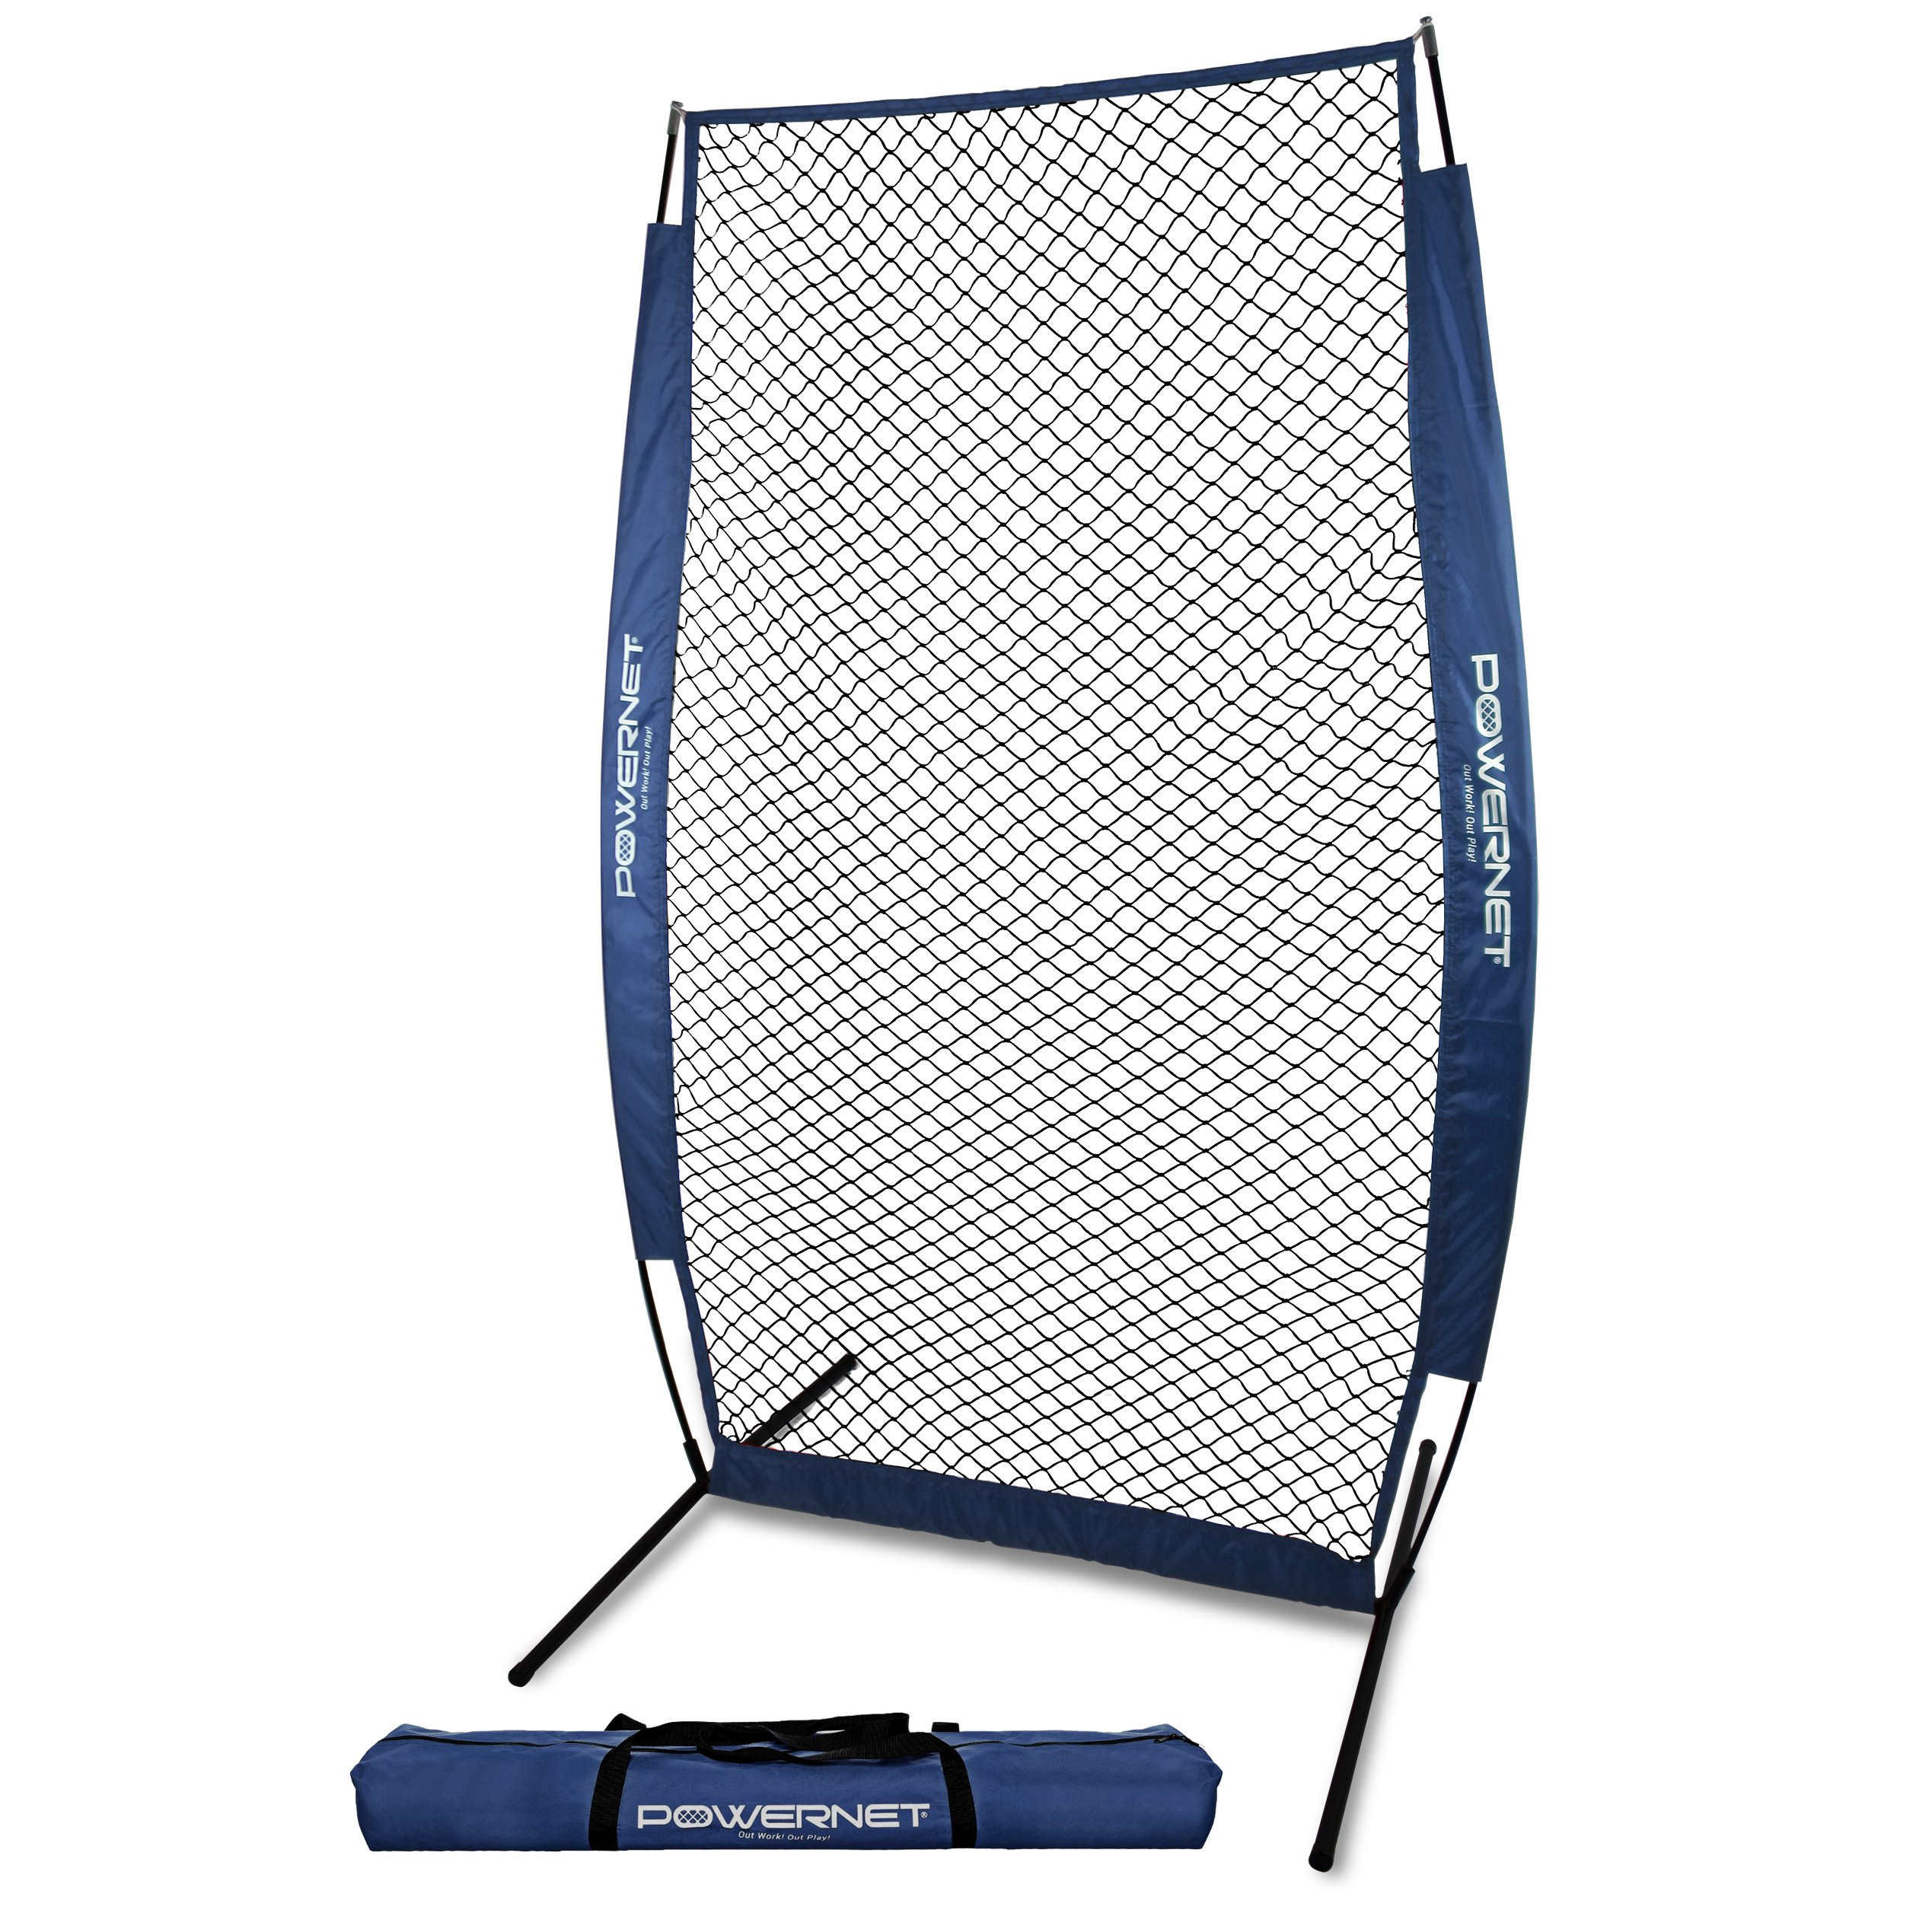 PowerNet I-Screen with Frame and Carry Bag (Navy) | Portable Baseball Pitcher Protection at Batting Practice | Instant Player and Coach Protector from Line Drives Grounders | Heavy Duty Netting